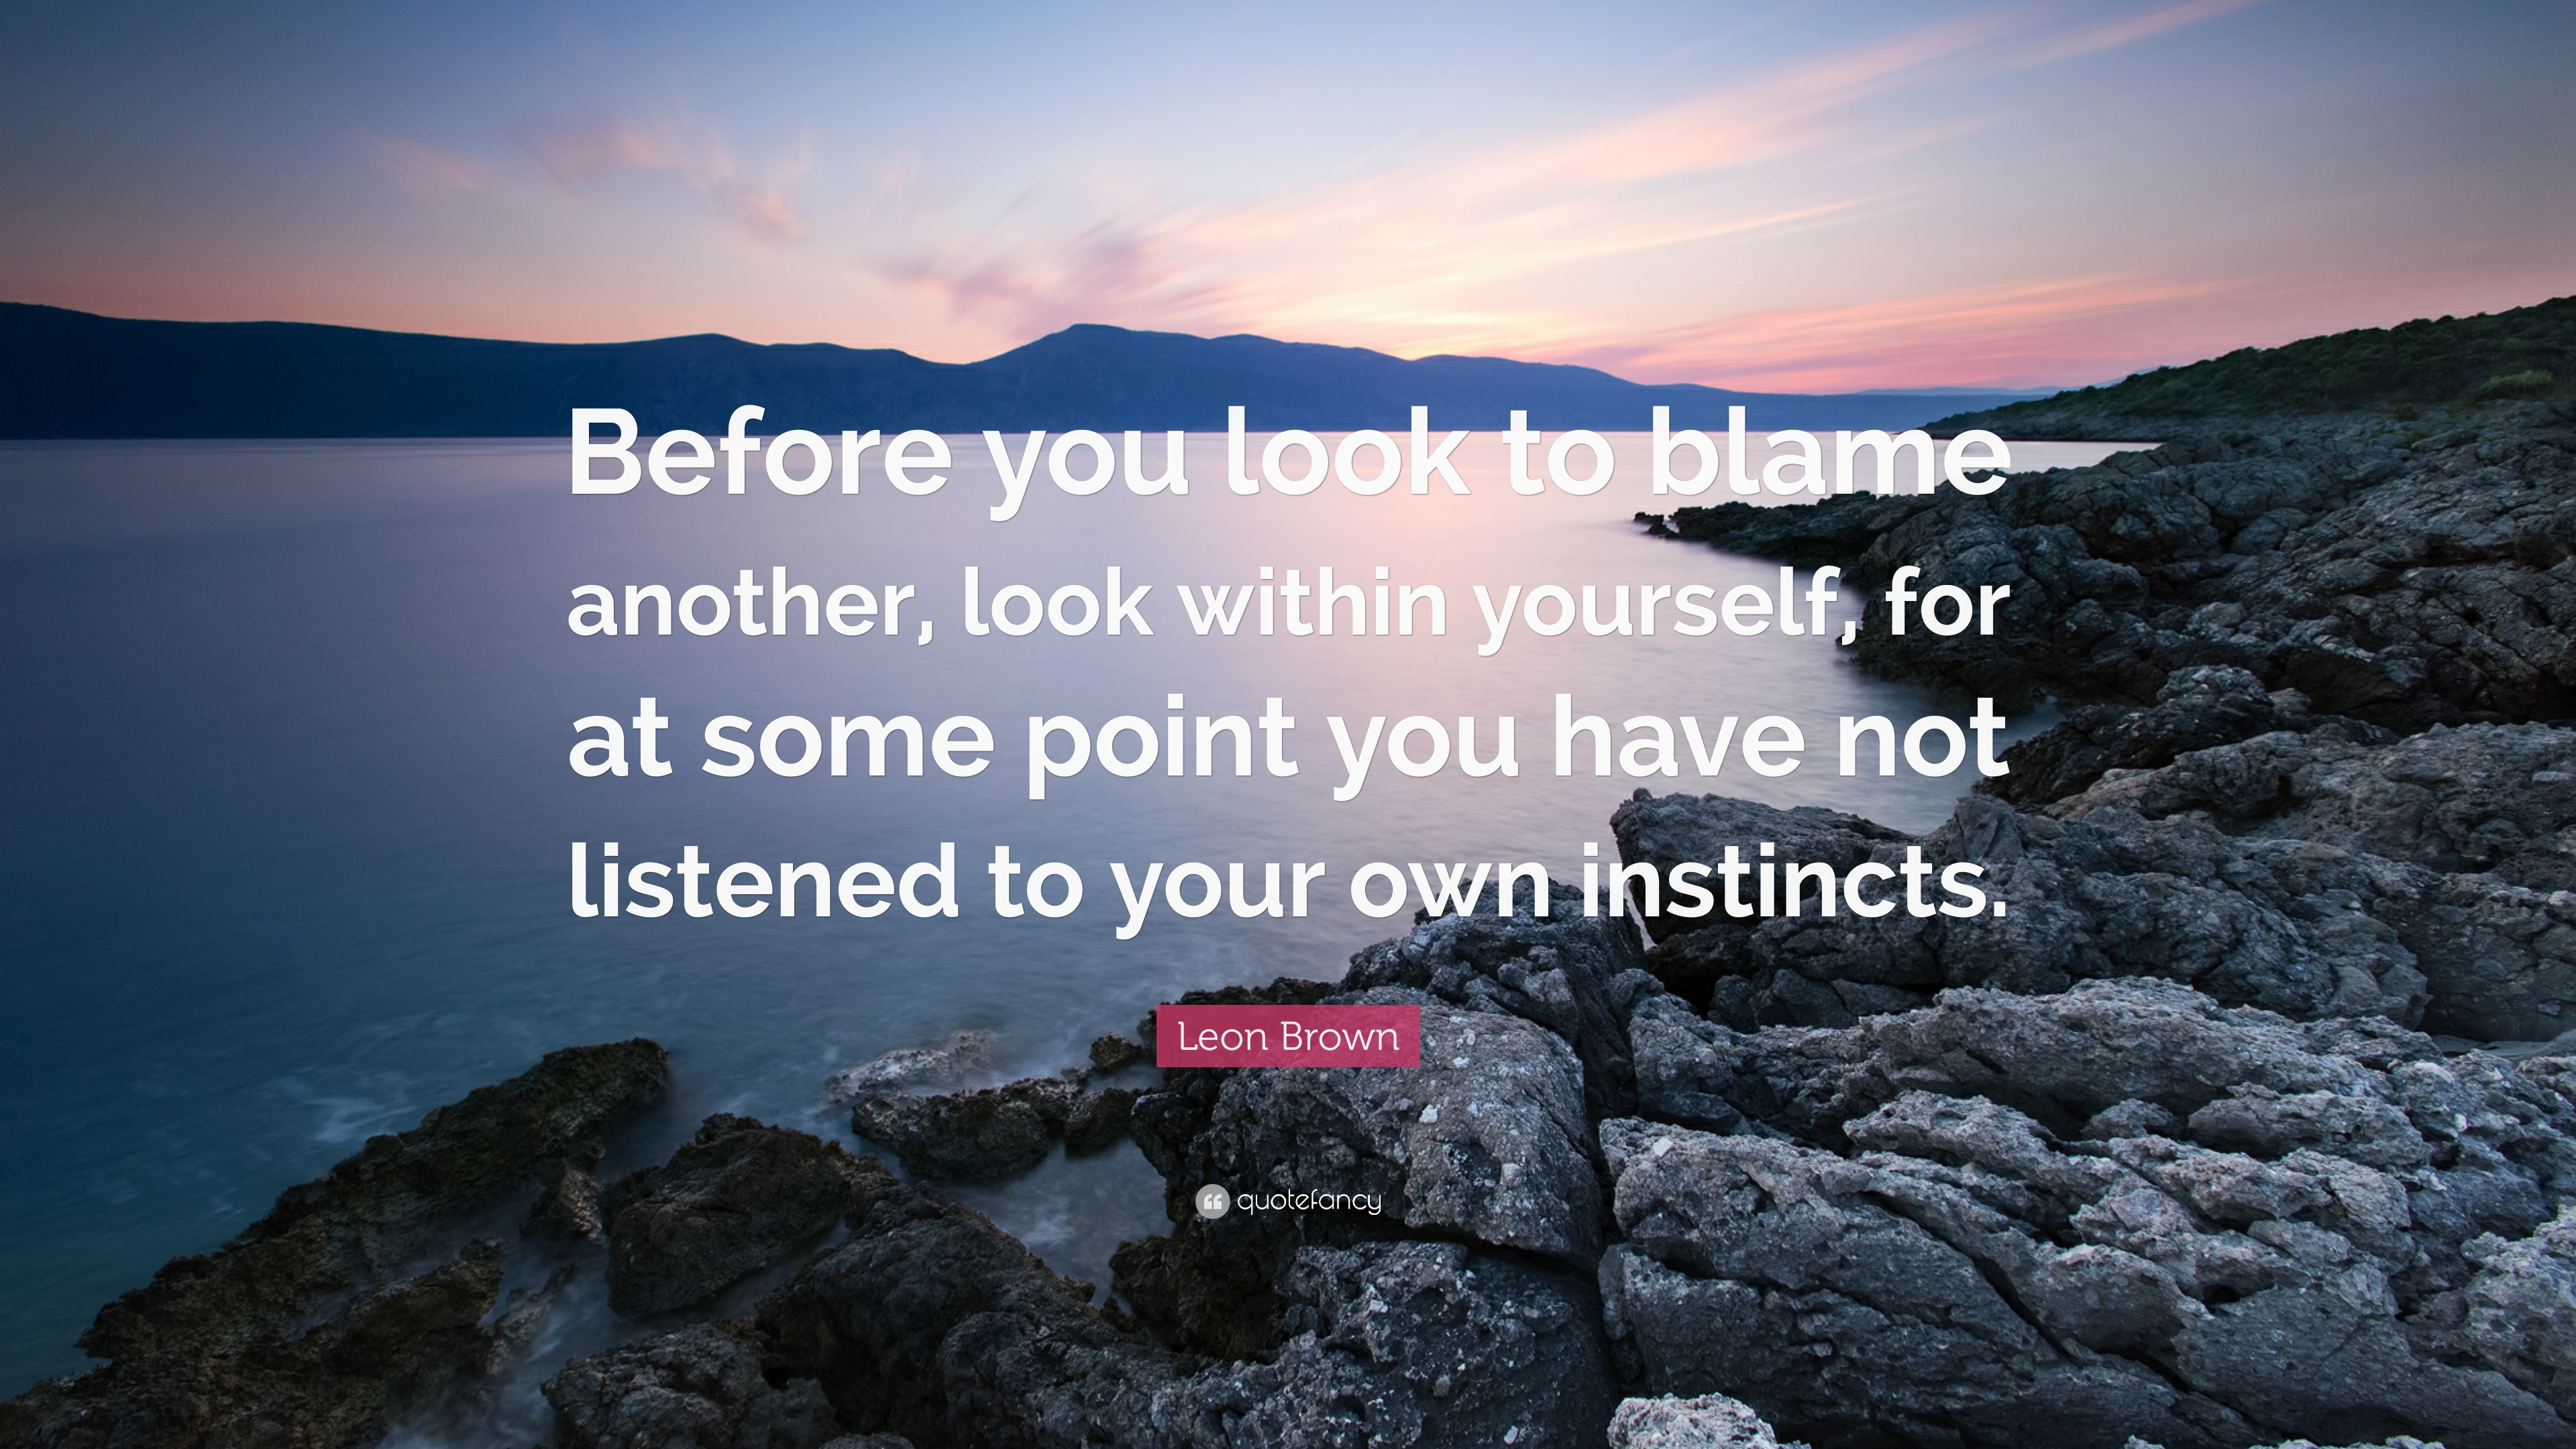 Leon Brown Quote Before You Look To Blame Another Look Within Yourself For At Some Point You Have Not Listened To Your Own Instincts 7 Wallpapers Quotefancy